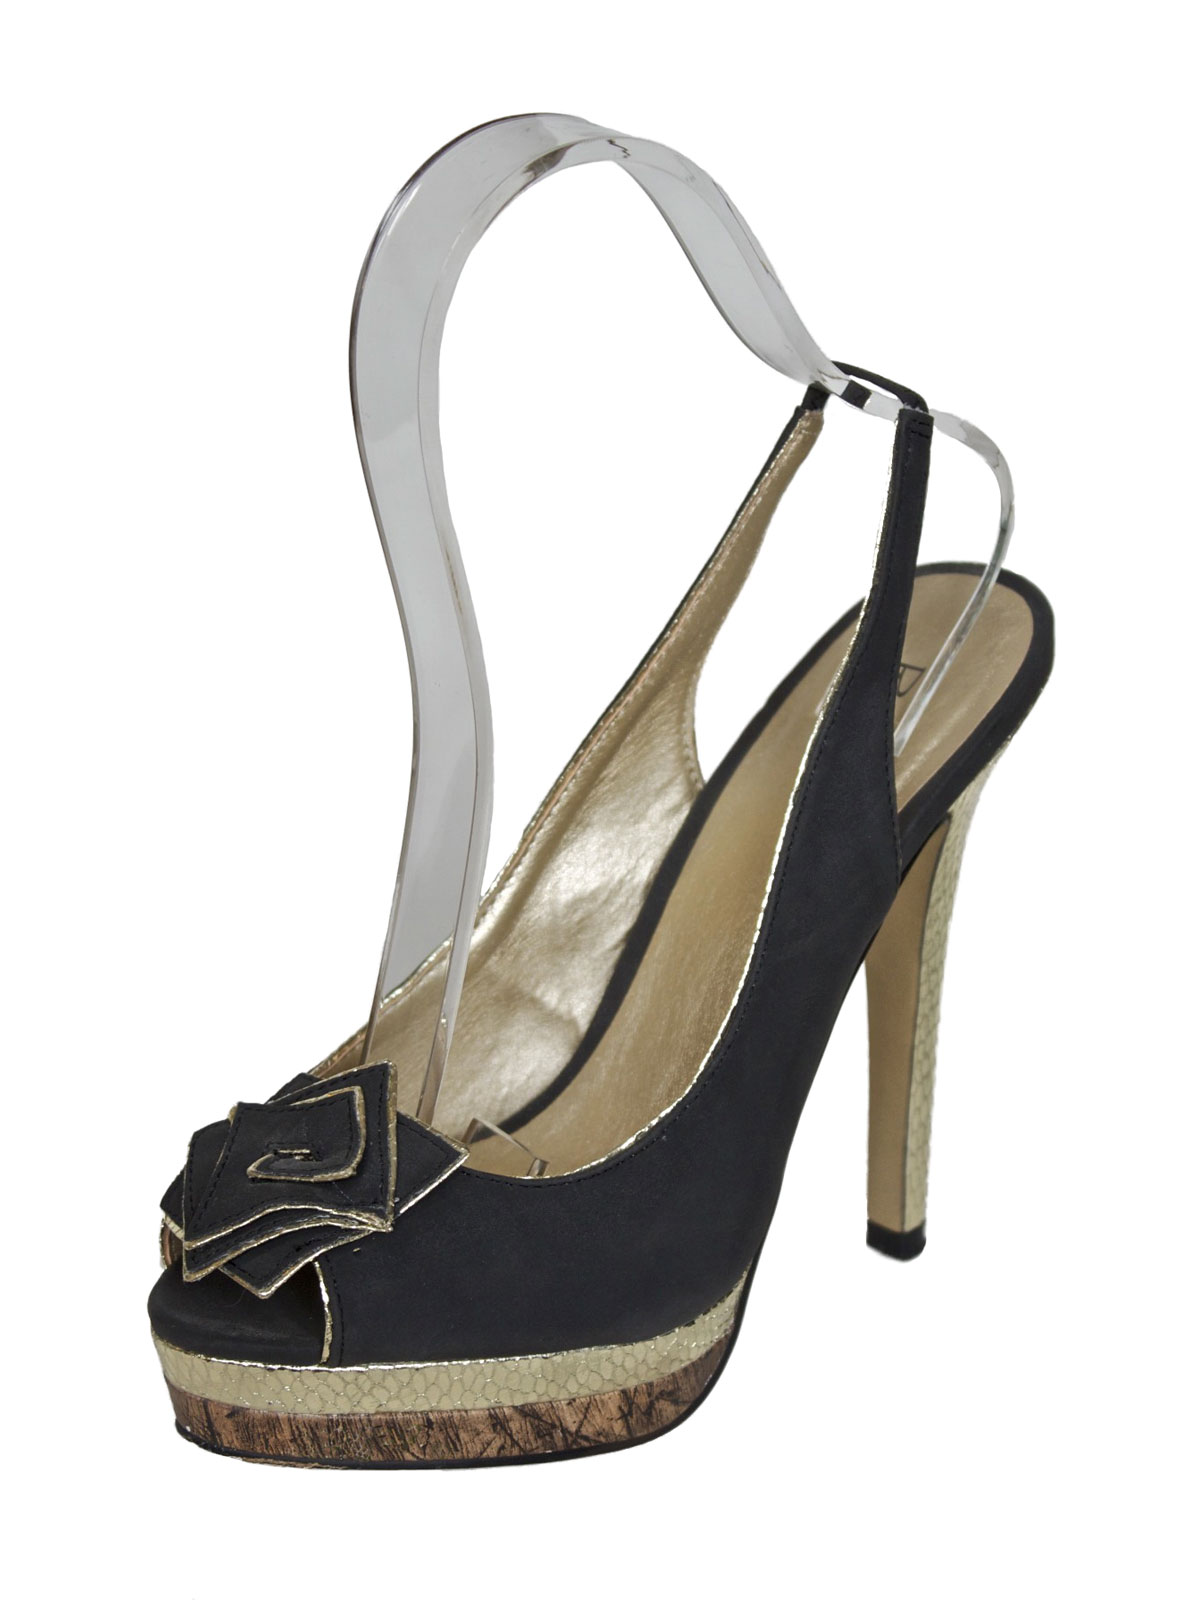 black and gold slingback high heels tout ensemble